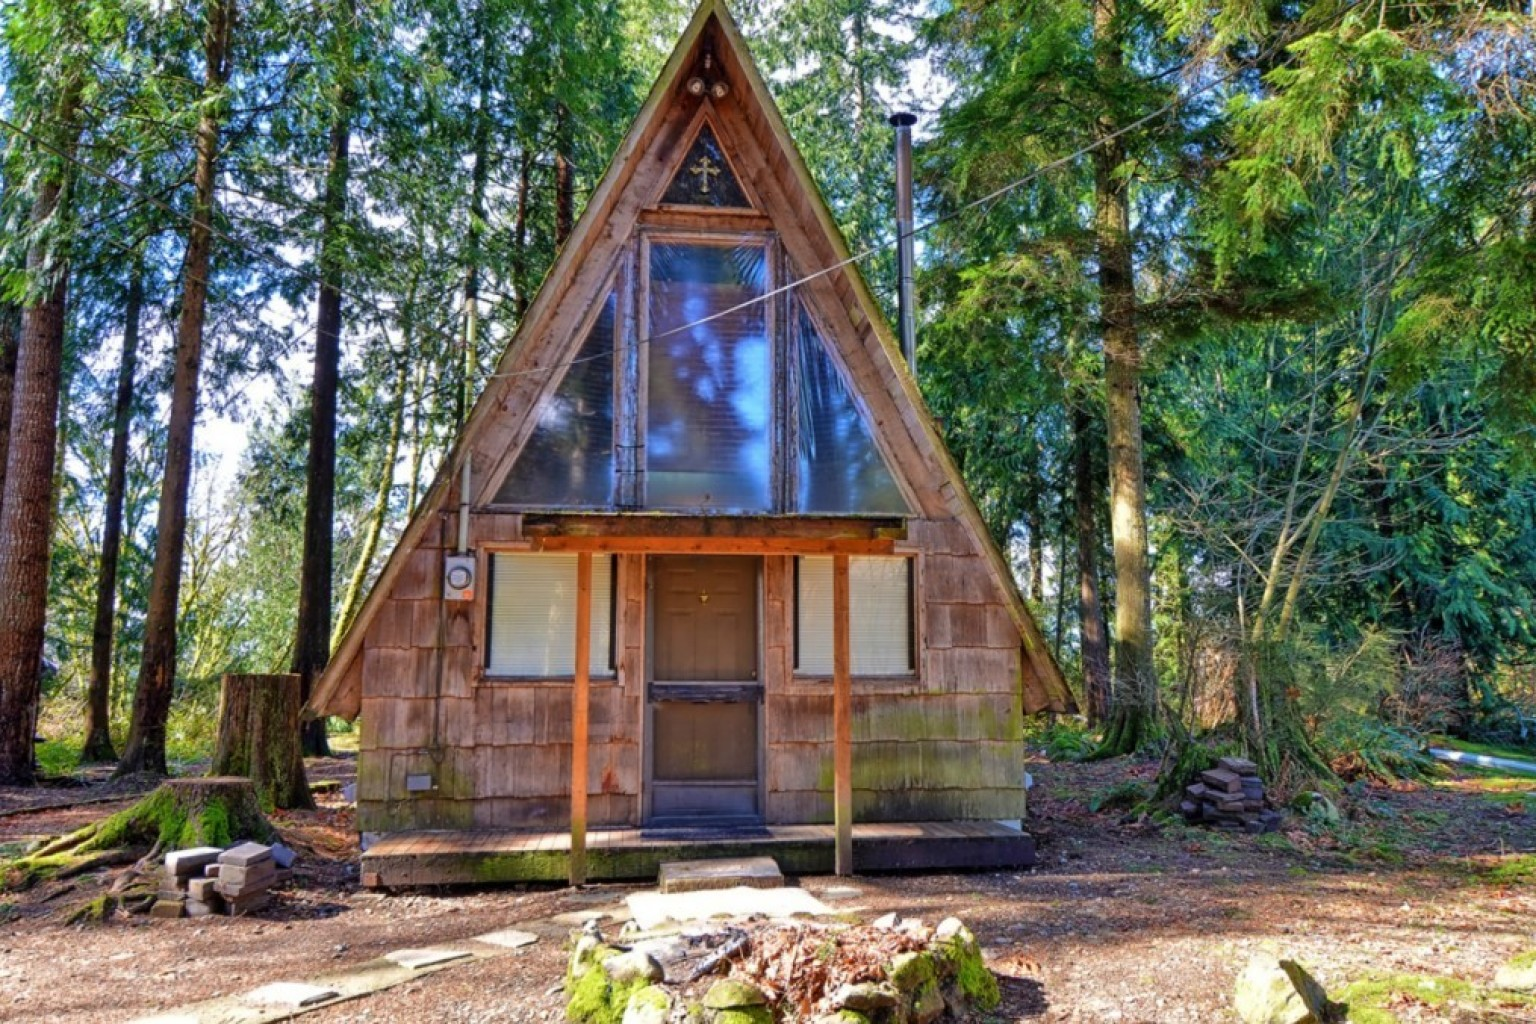 This A Frame Tiny Home For Sale Would Make The Perfect